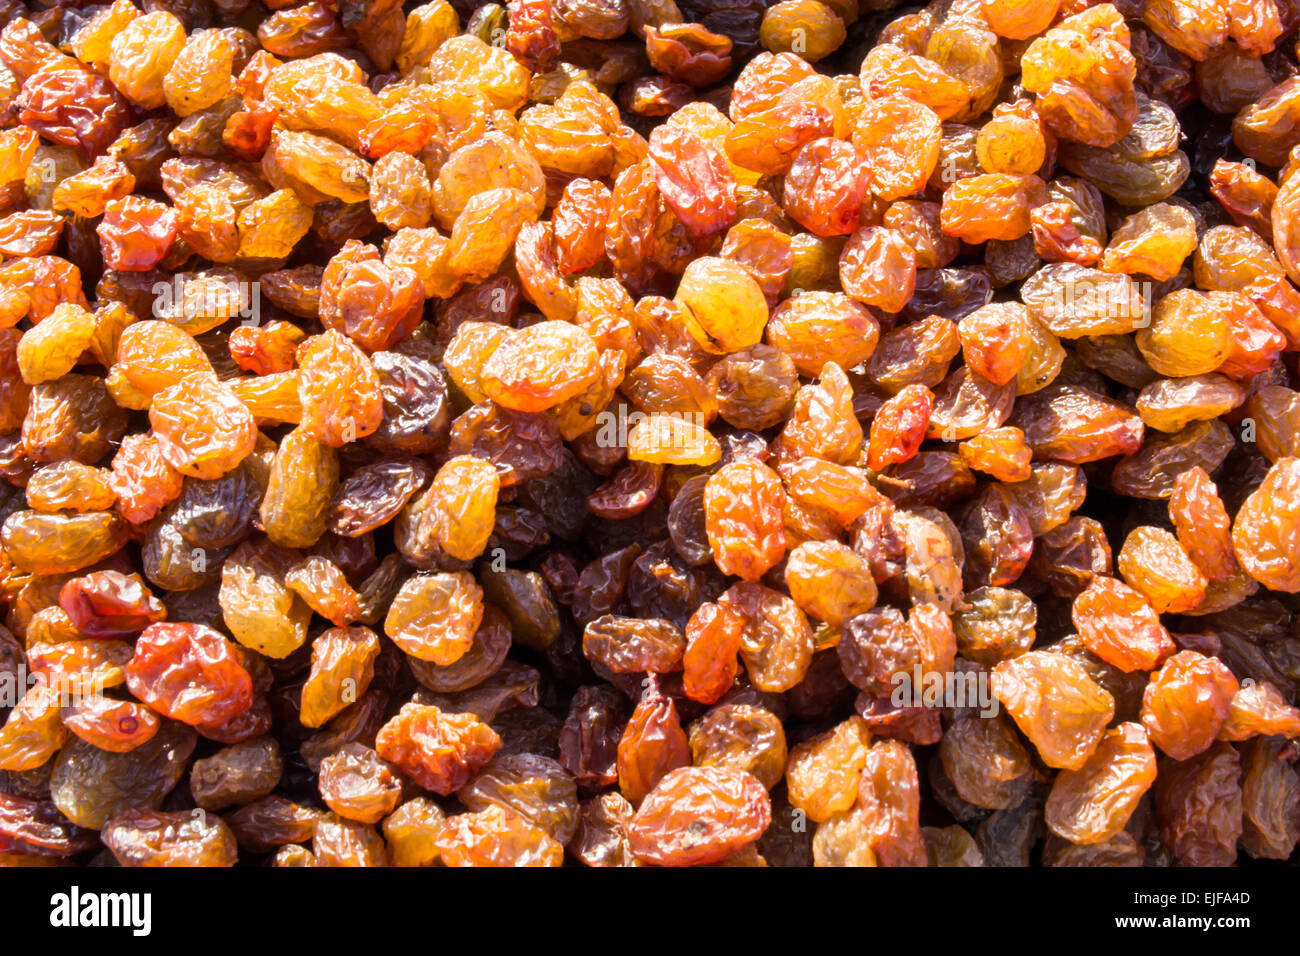 Fresh sultanas at a local shopping market stall in Russia - Stock Image